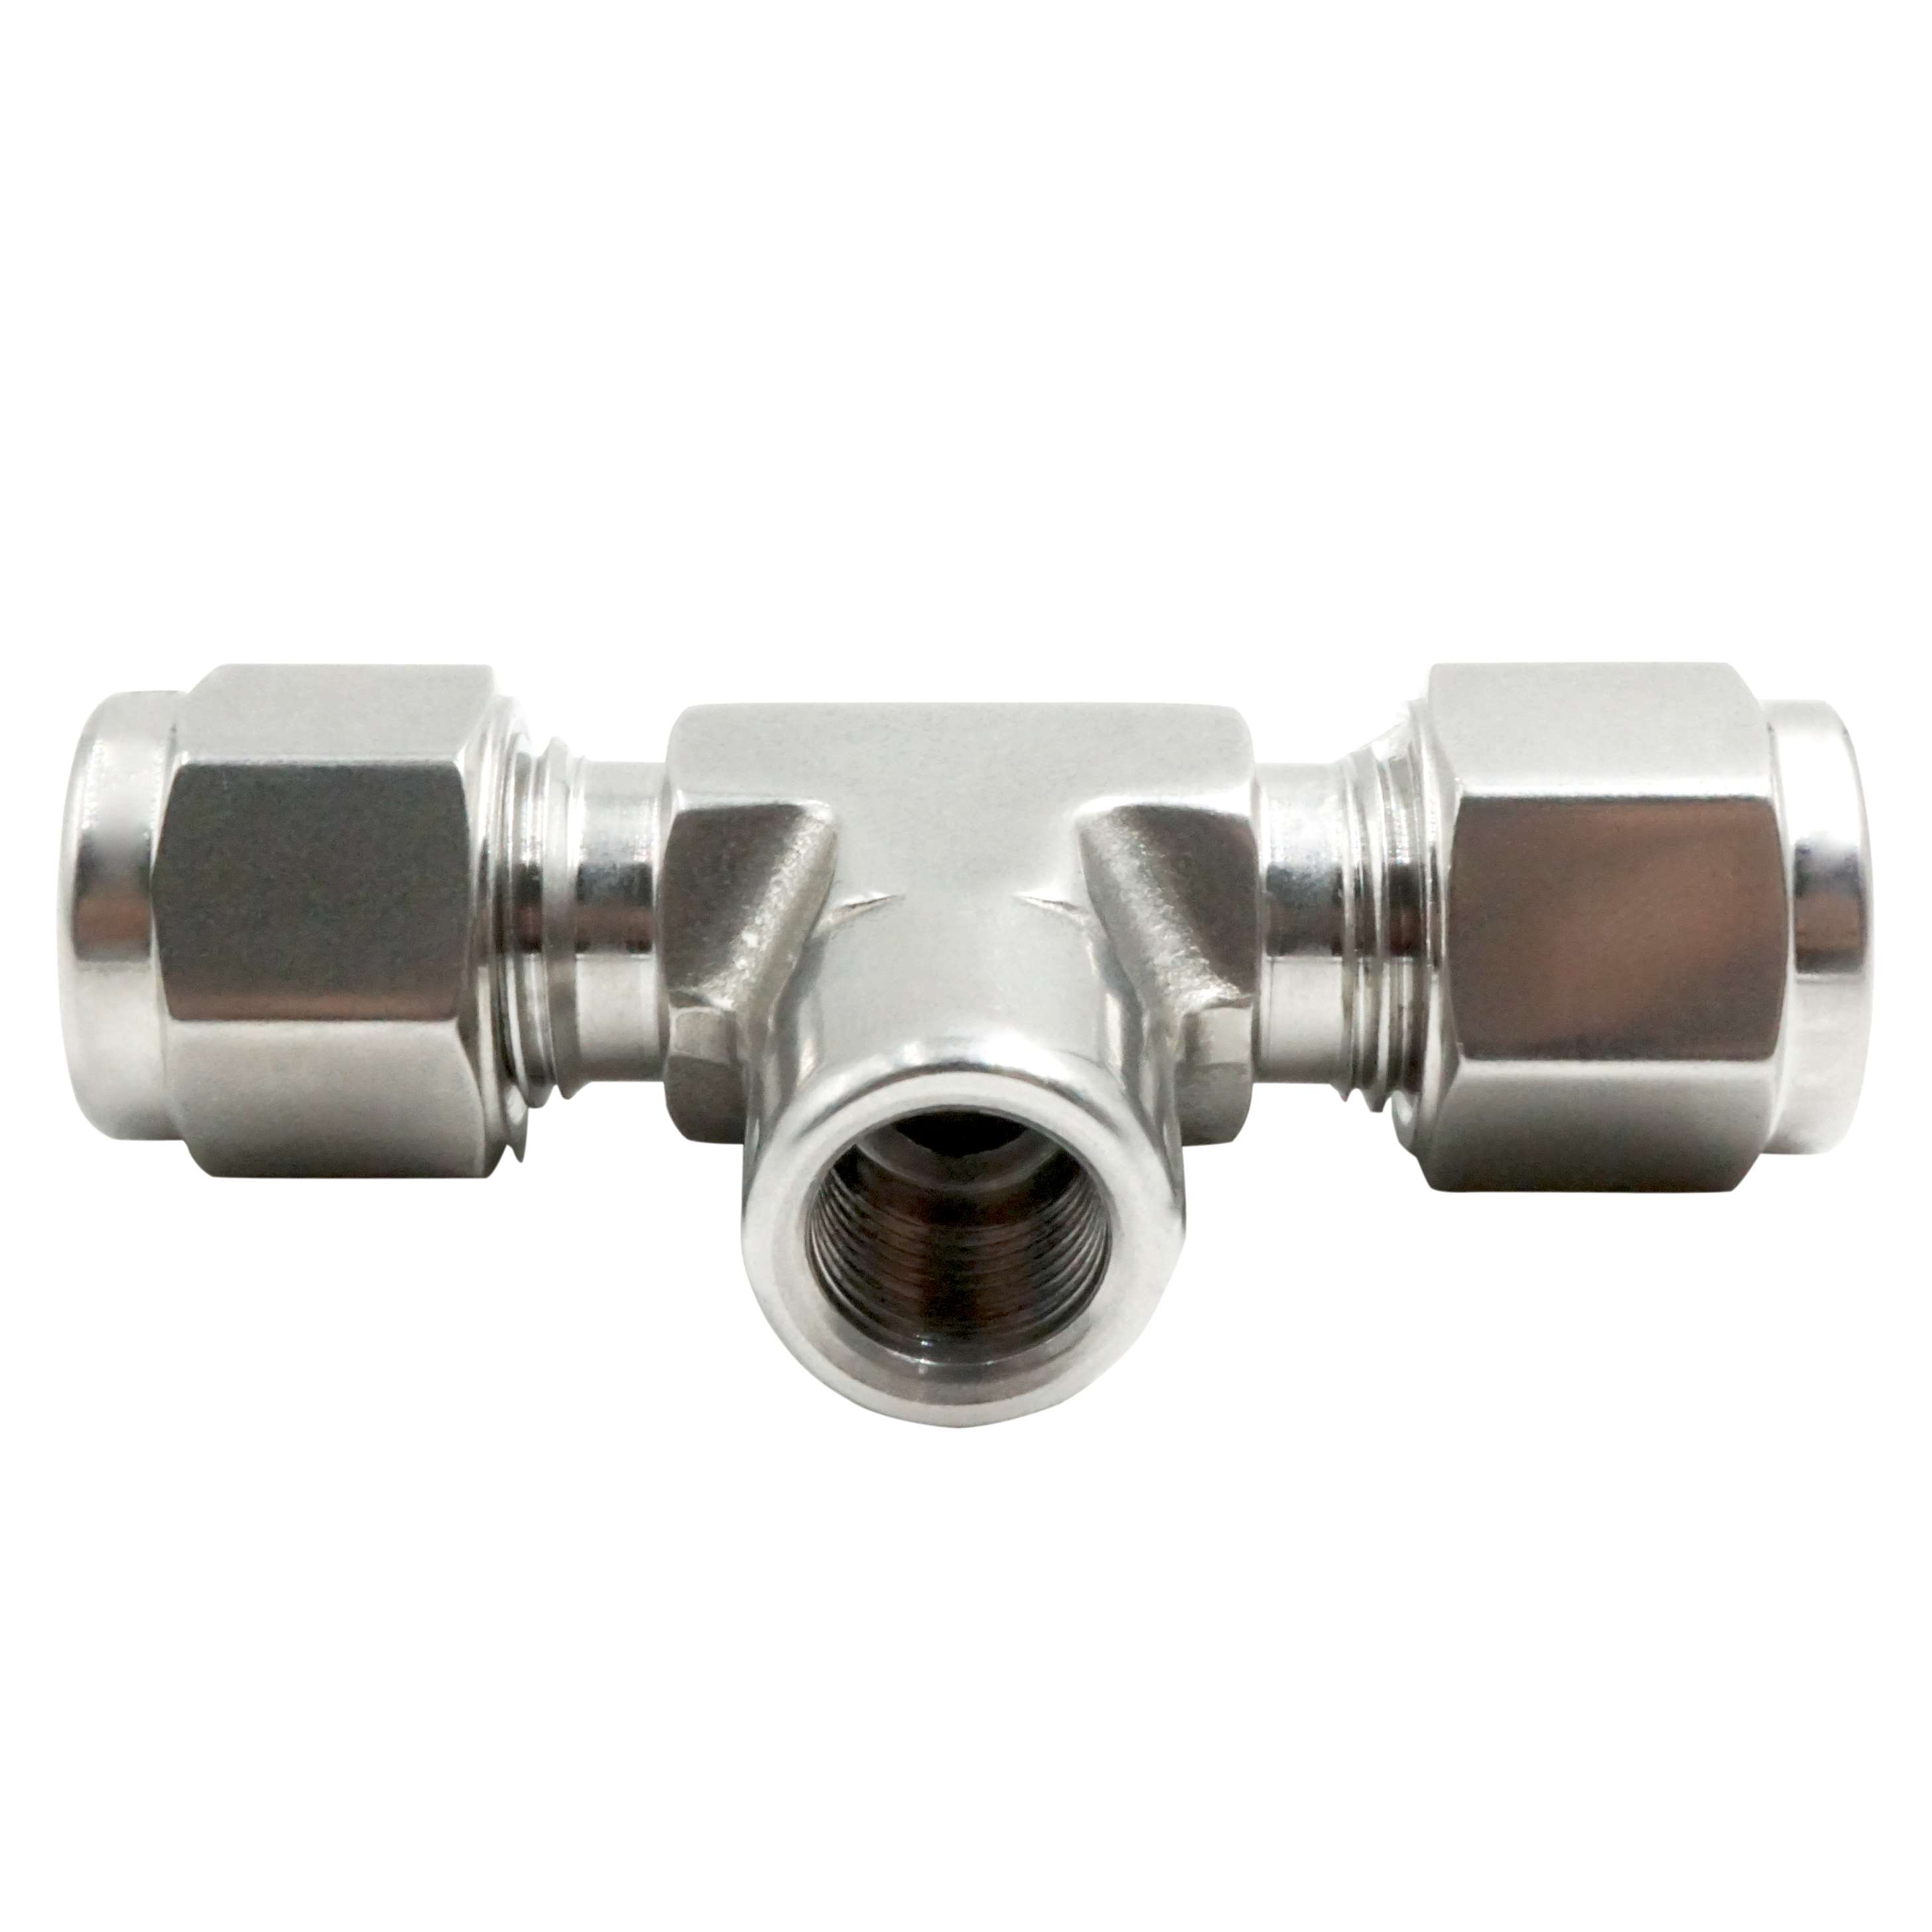 Misting connector, misting fitting, compressor fitting for